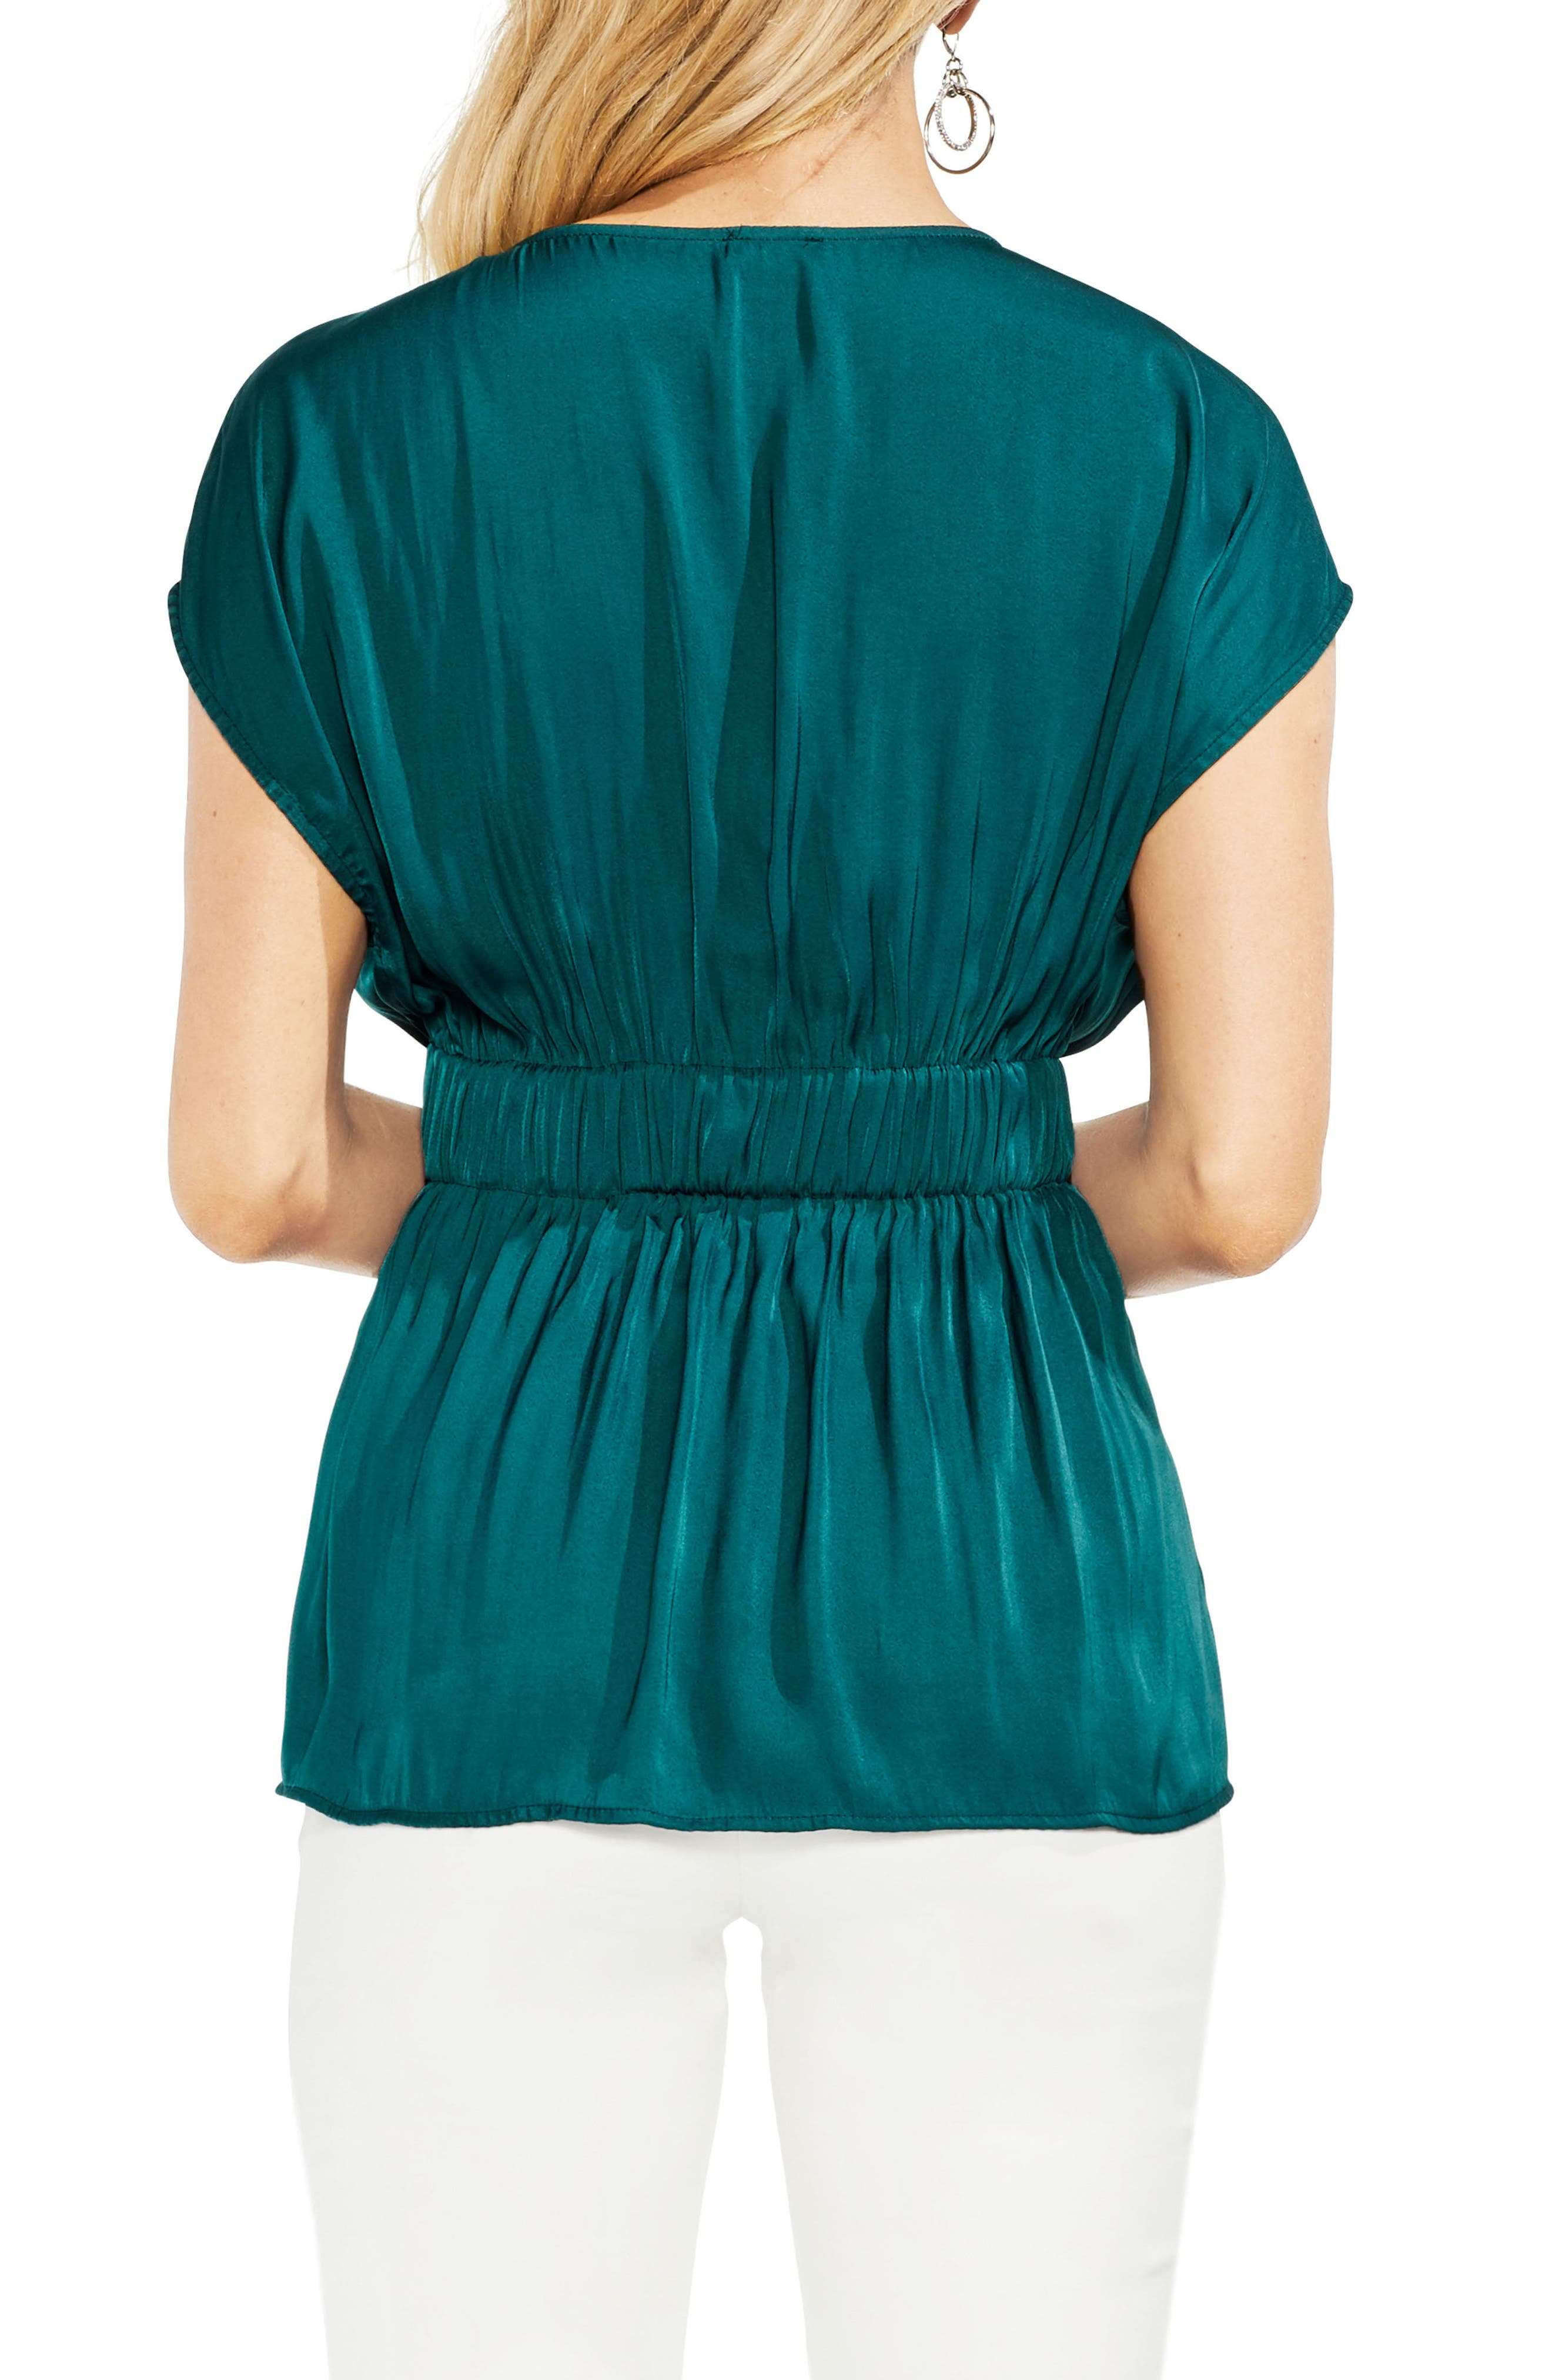 Cinched Waist Top,                             Alternate thumbnail 4, color,